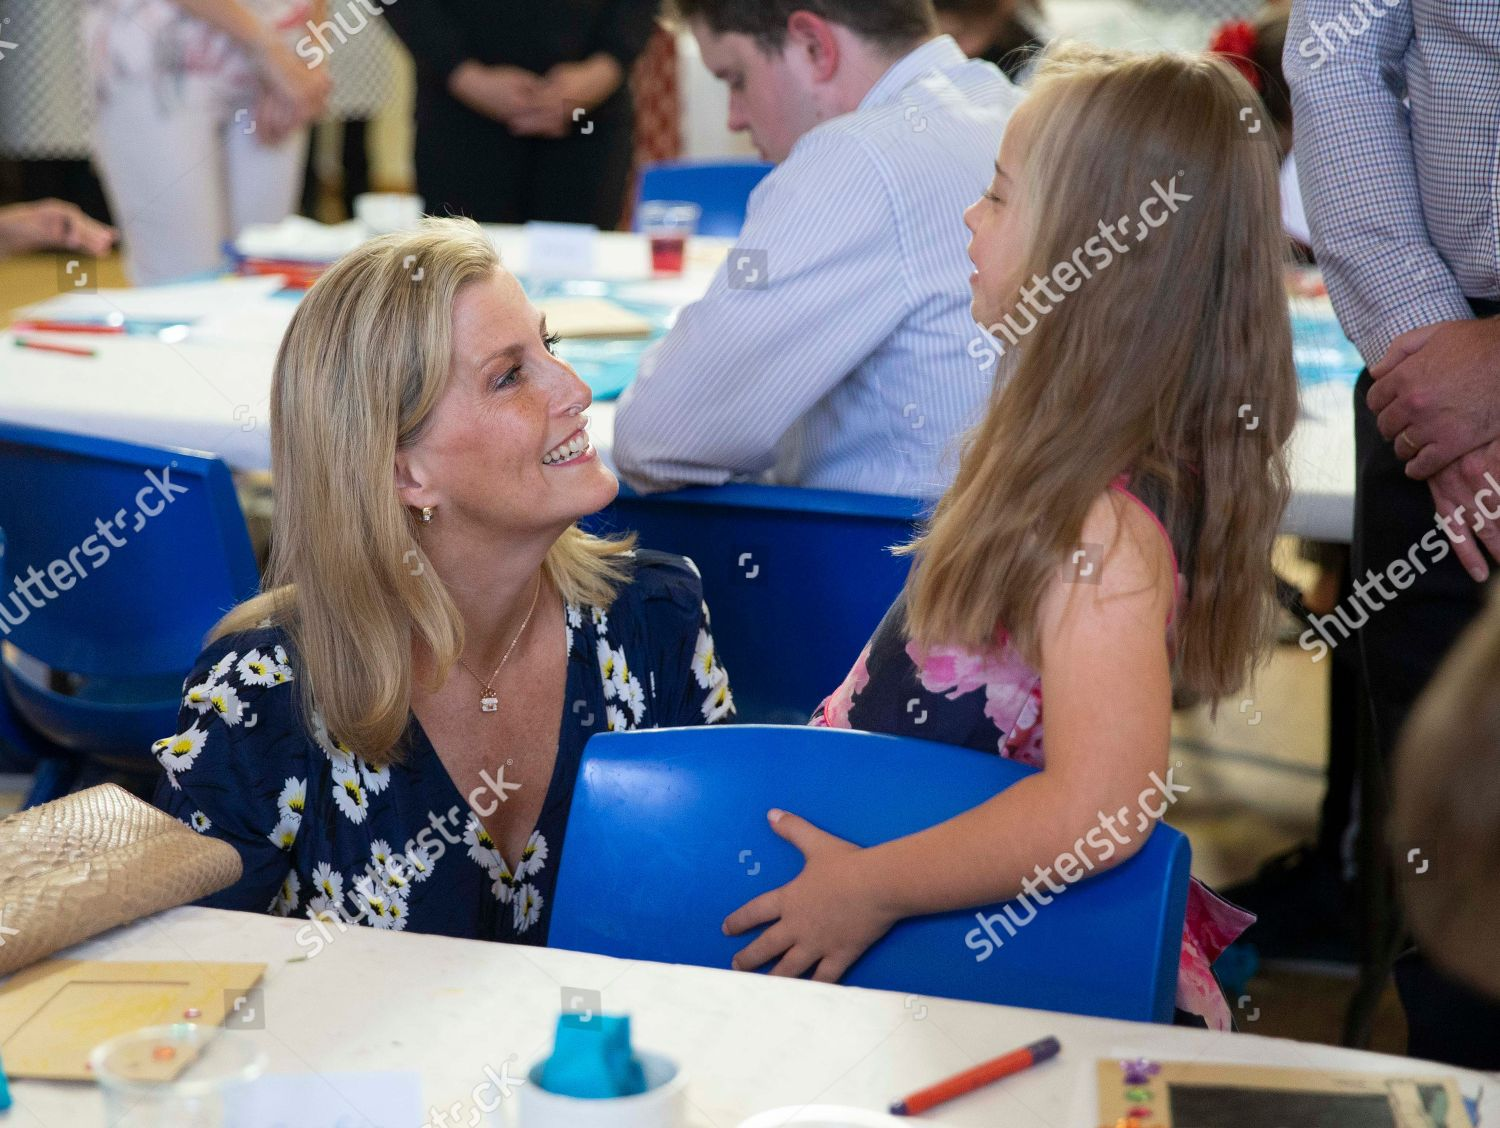 sophie-countess-of-wessex-visits-the-me2-club-tea-party-woodley-uk-shutterstock-editorial-9885213o.jpg